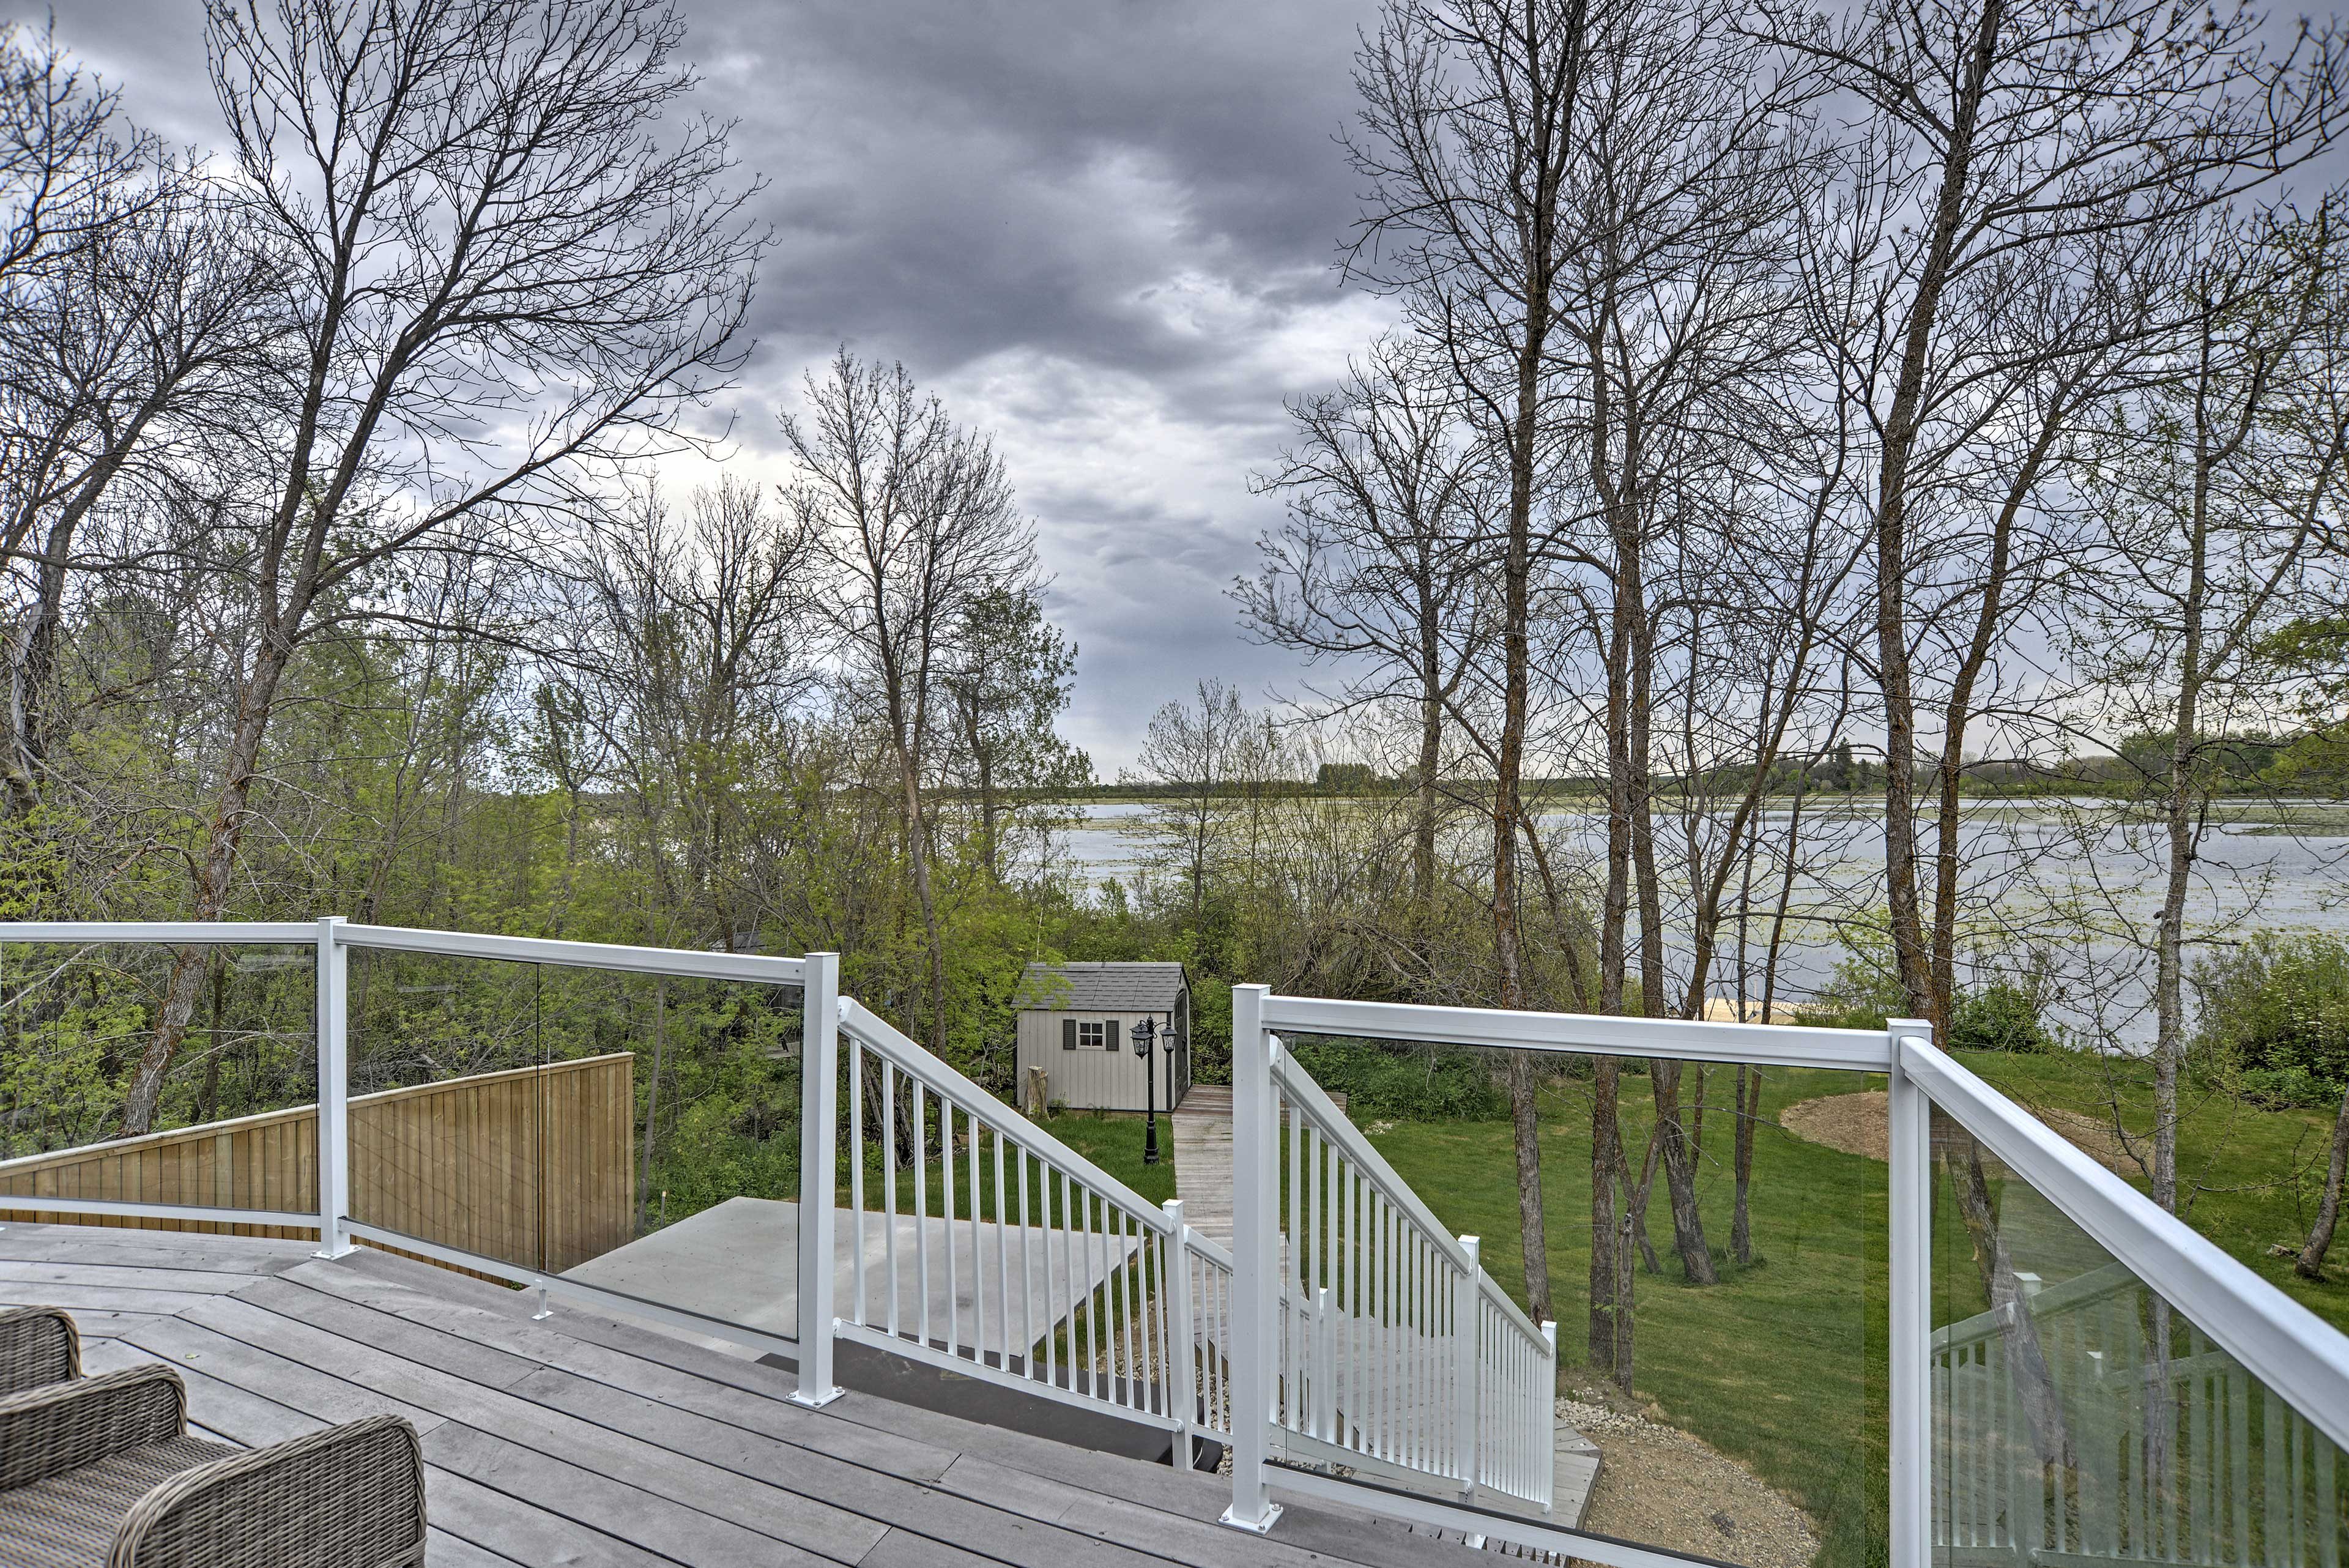 The spacious deck looks out over the lake.